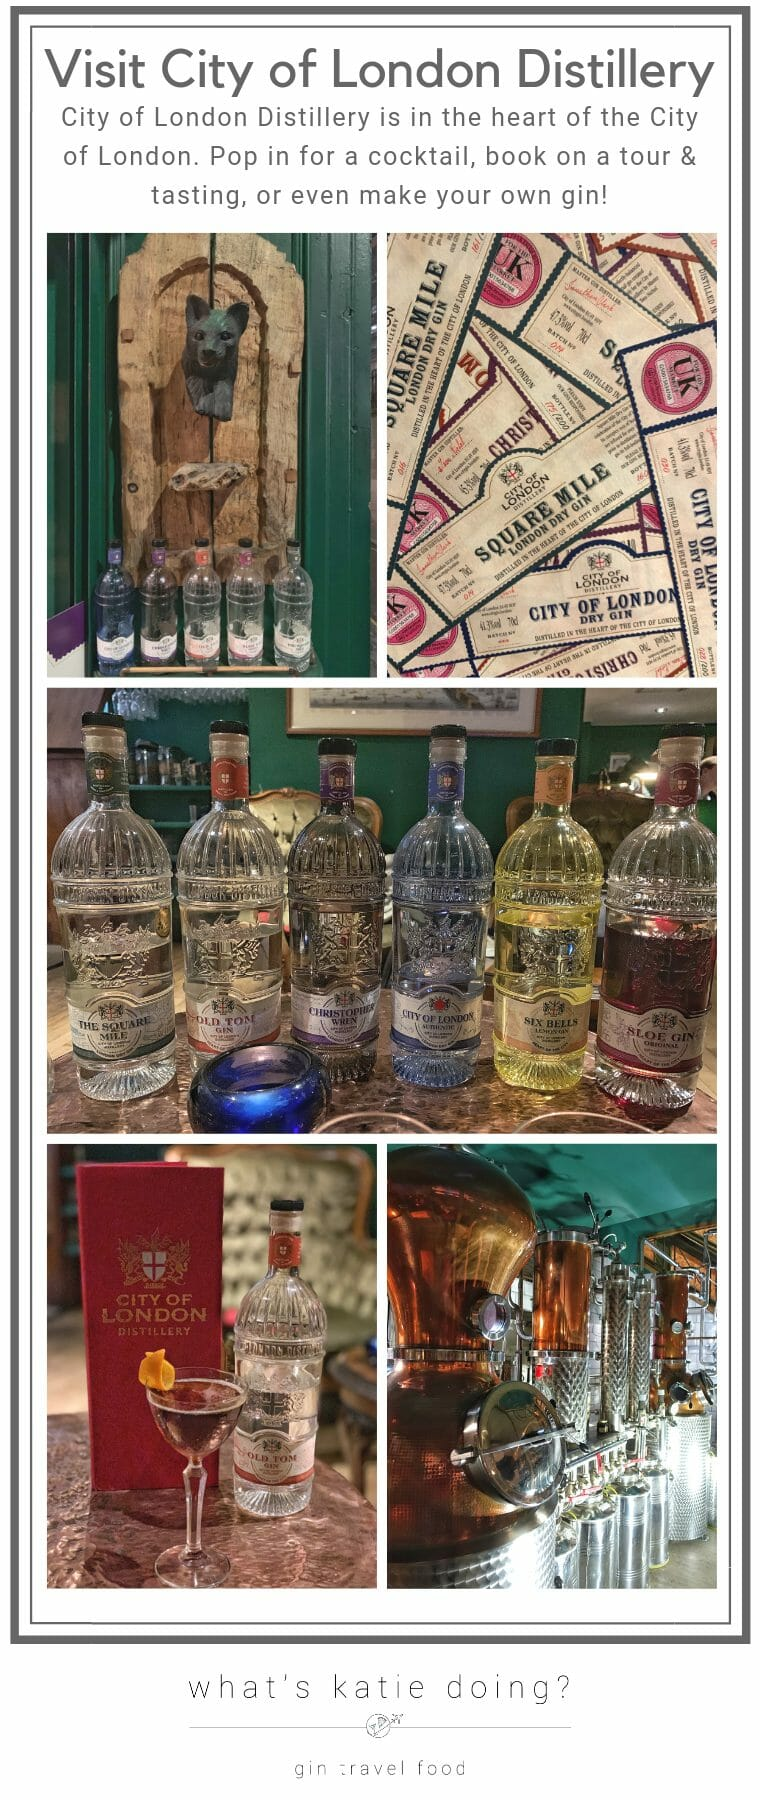 Visit City of London Distillery: Tour, taste and make your own gin at this central London distillery